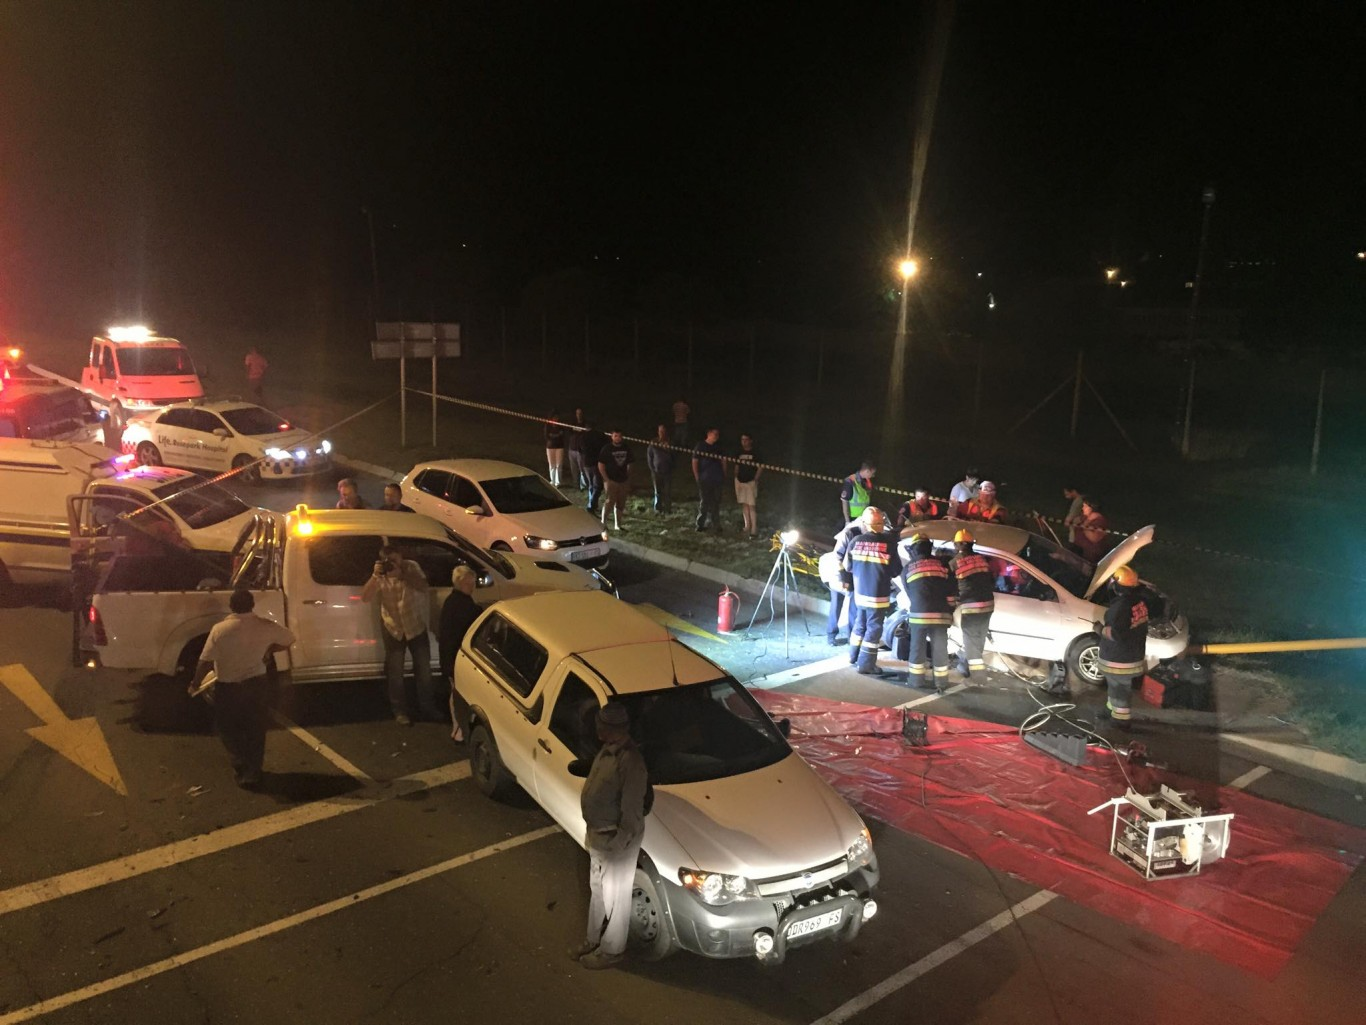 Two injured in rear-end collision at traffic light in Bloemfontein